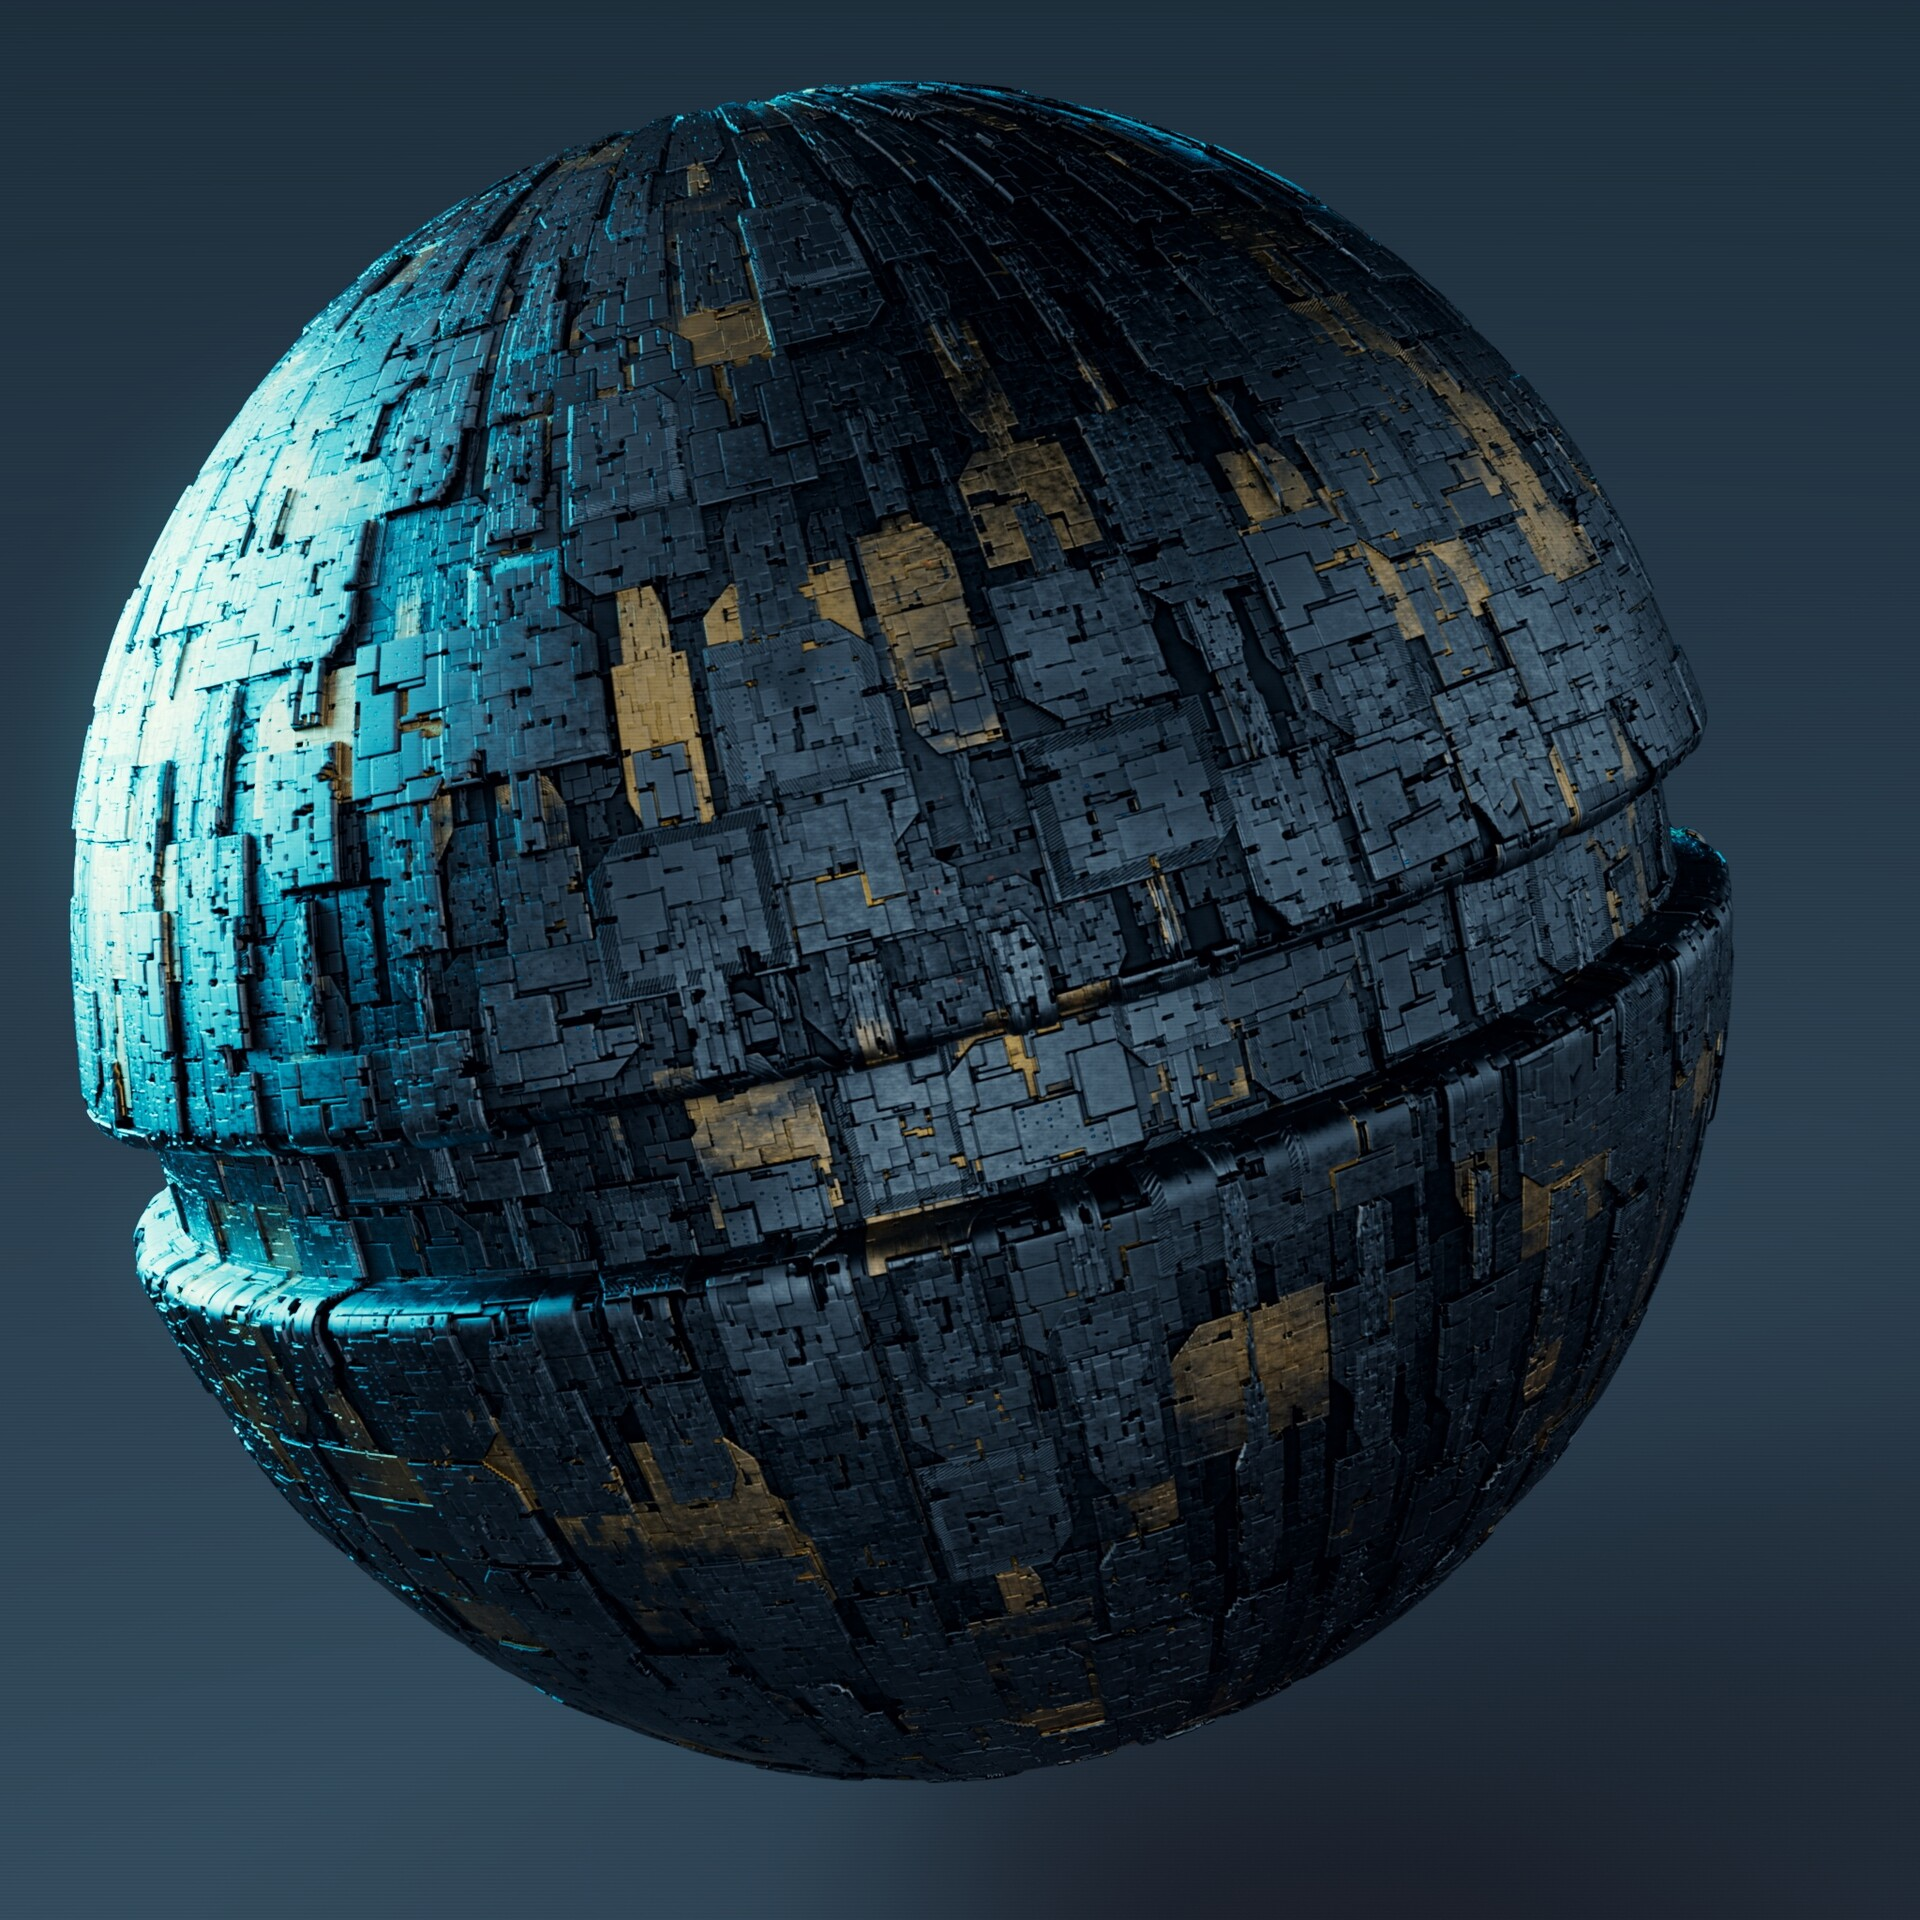 Rendered in RedShift over a simple base model 8k maps + 4x Tiling